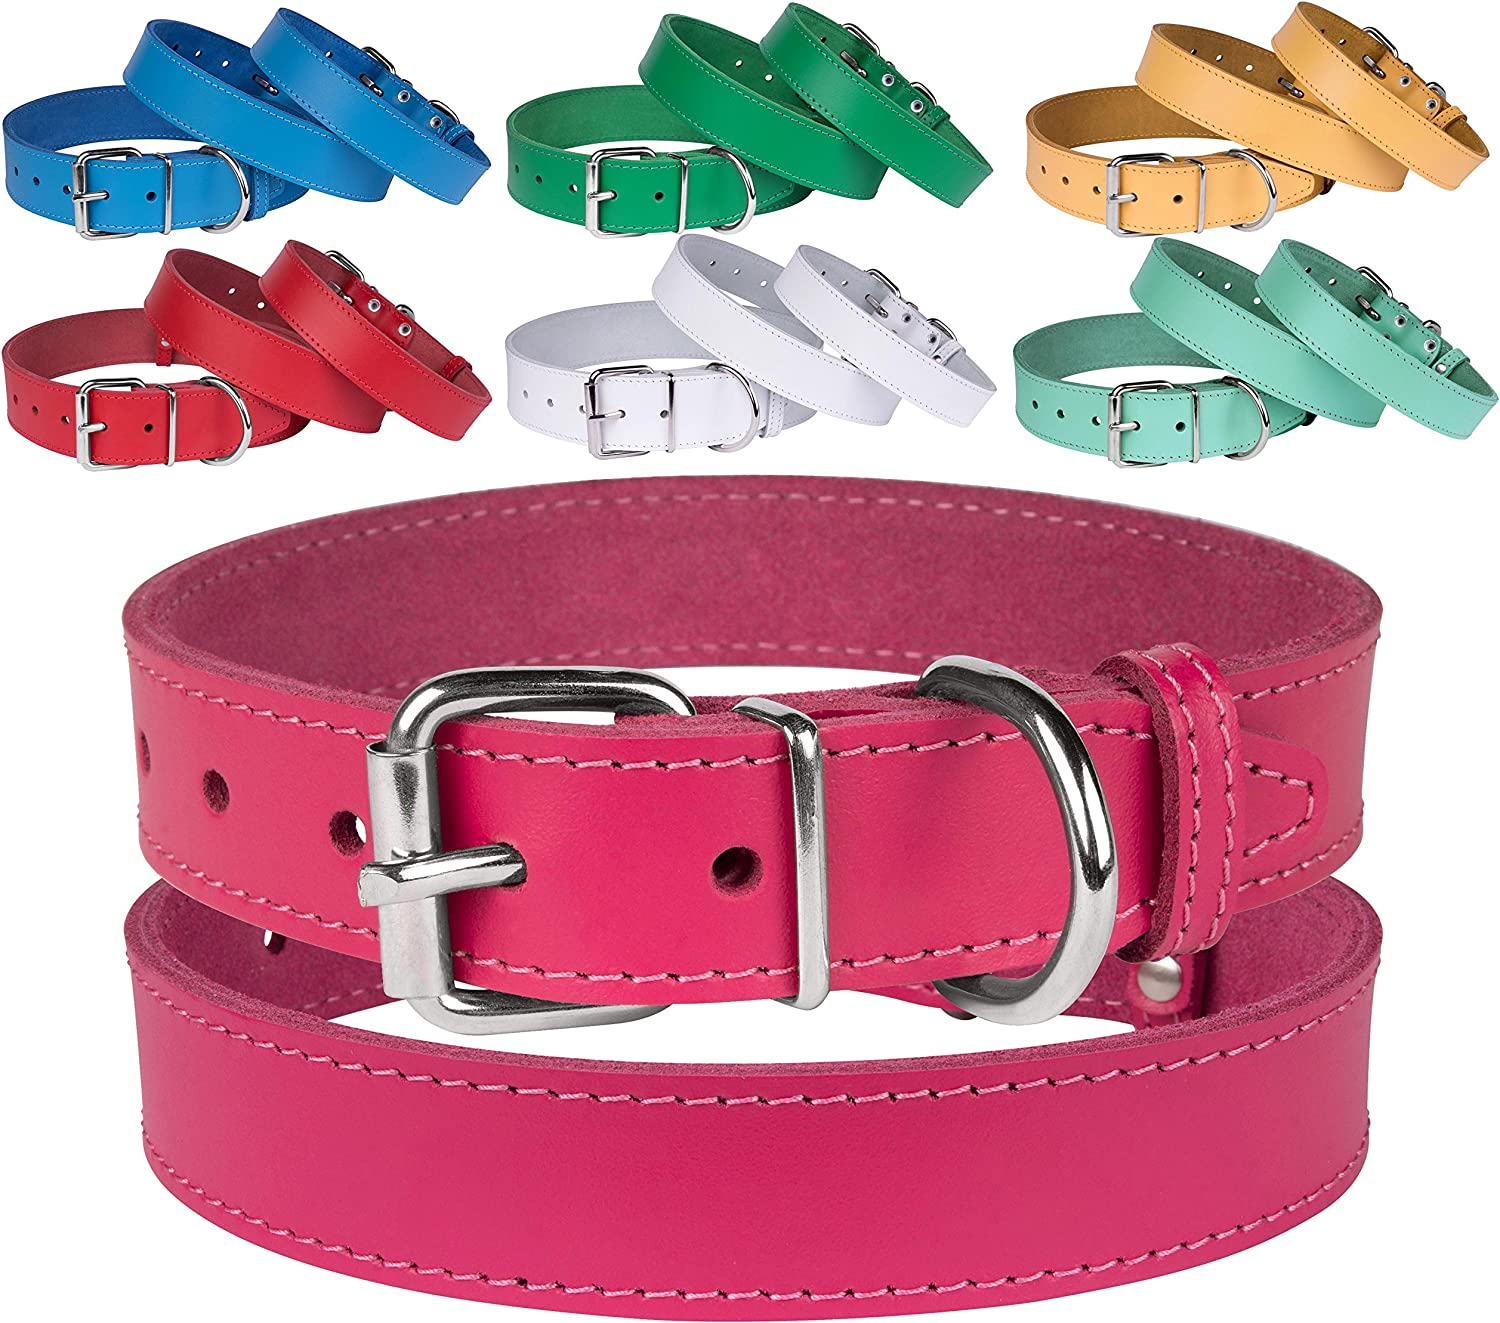 BronzeDog Genuine Leather Dog Collar Puppy Pet Collar for Dogs Small Medium Large Pink Red bluee Green Turquoise White Yellow (Neck Size 17   18 , Pink)